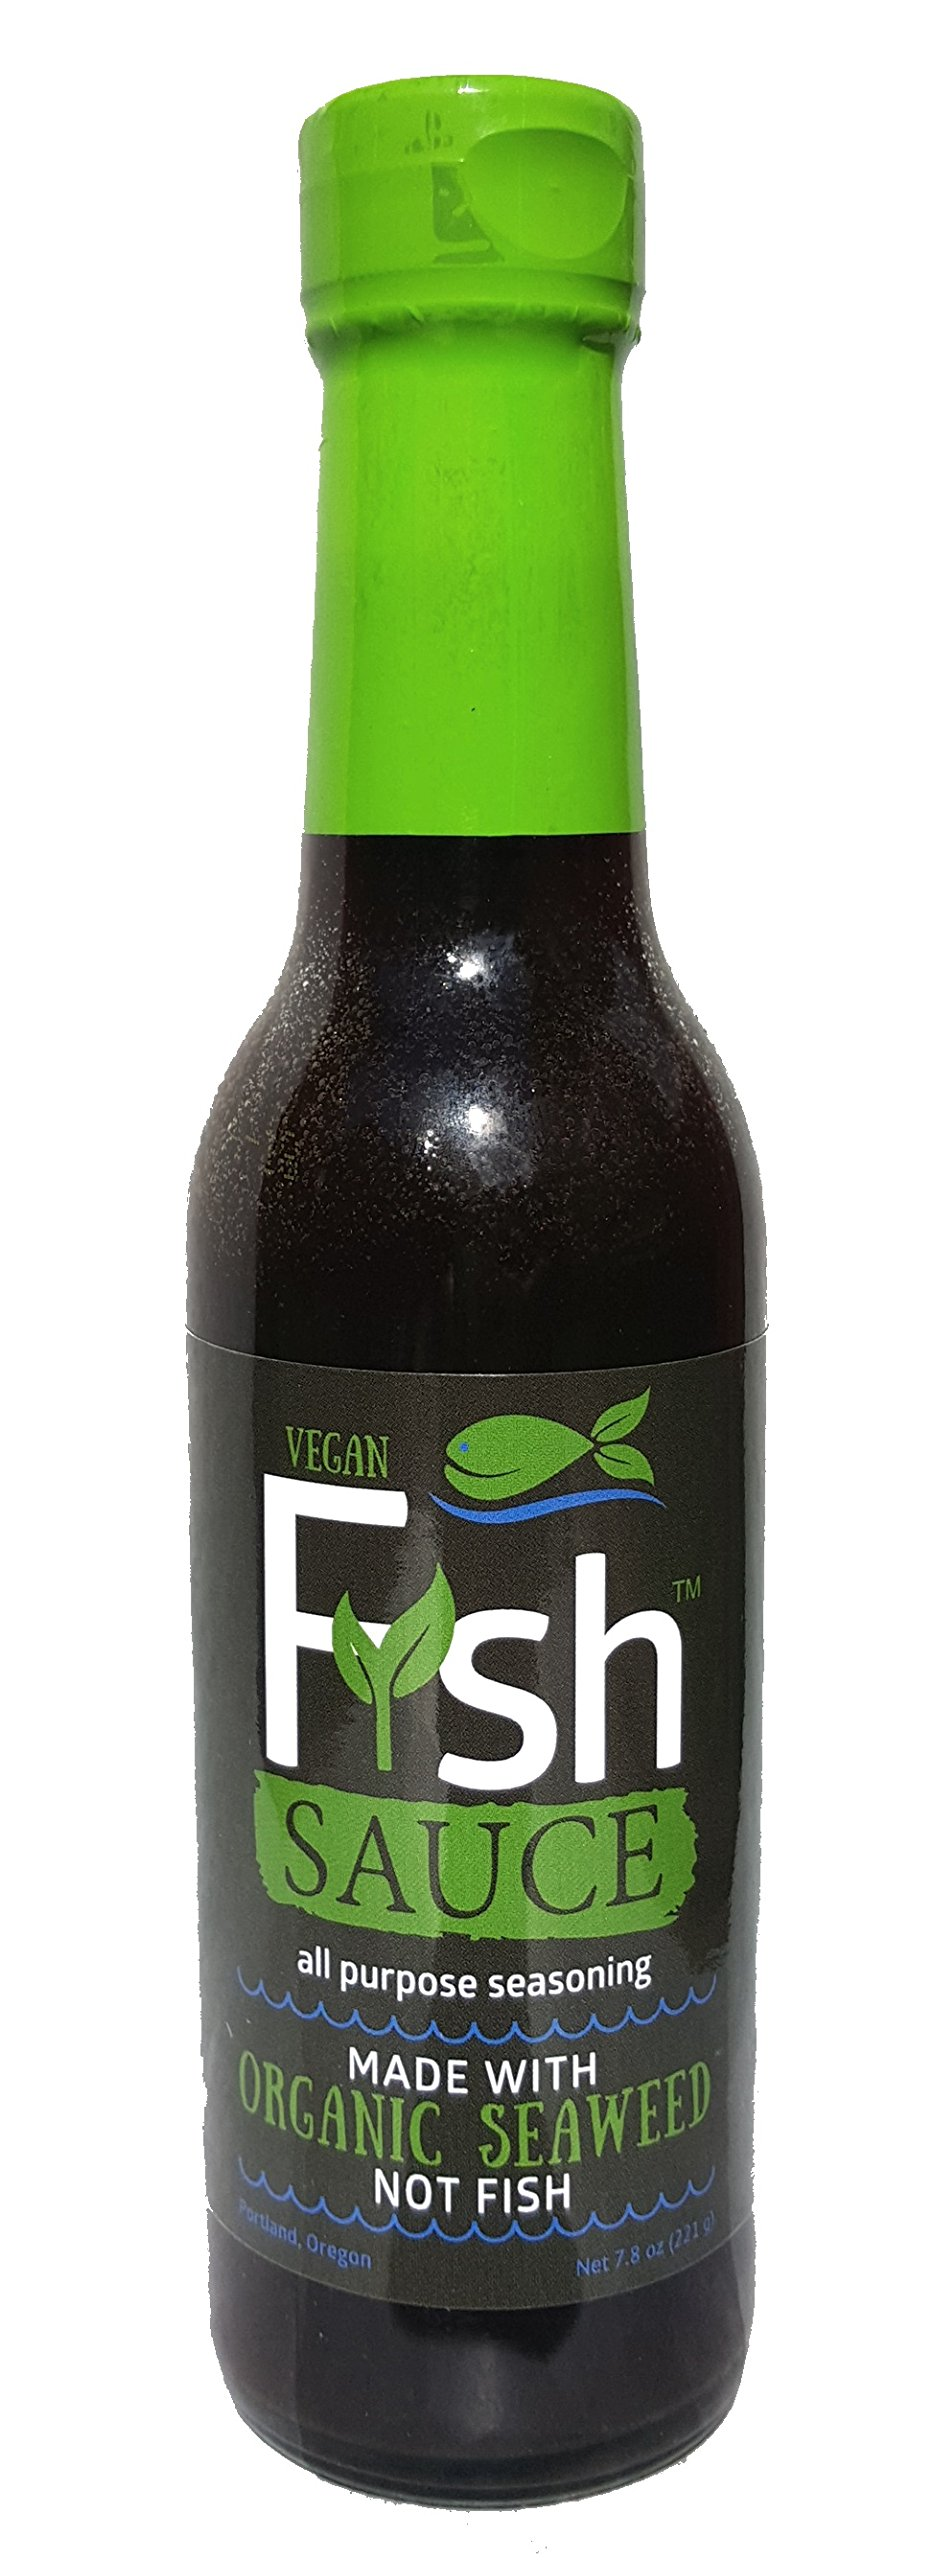 Vegan Fysh Sauce (Vegan Fish Sauce Made with Seaweed)